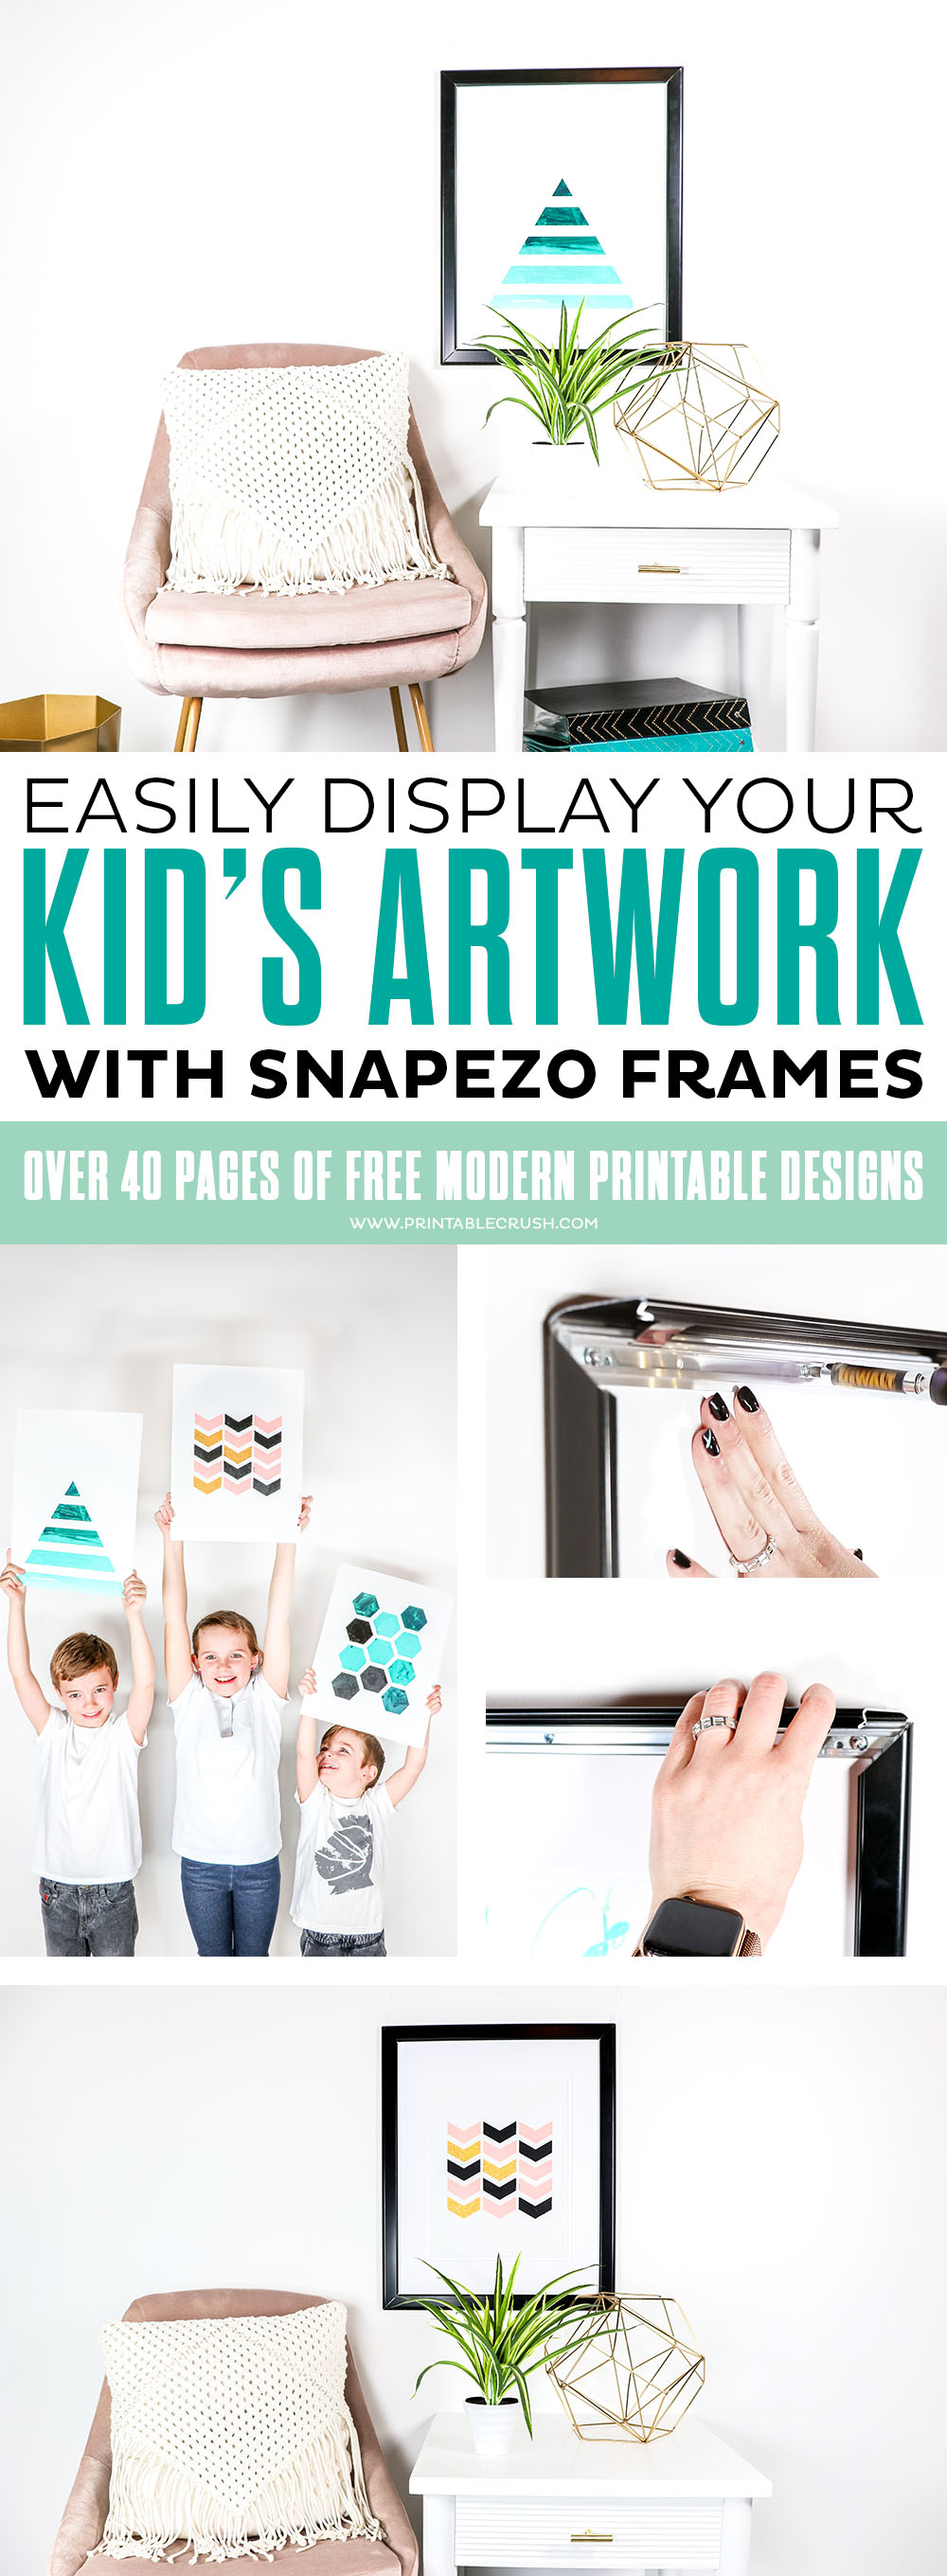 Easily switch out kid artwork with Snapezo frames - these would also be great to display and switch out schedules, printable artwork and family pictures!